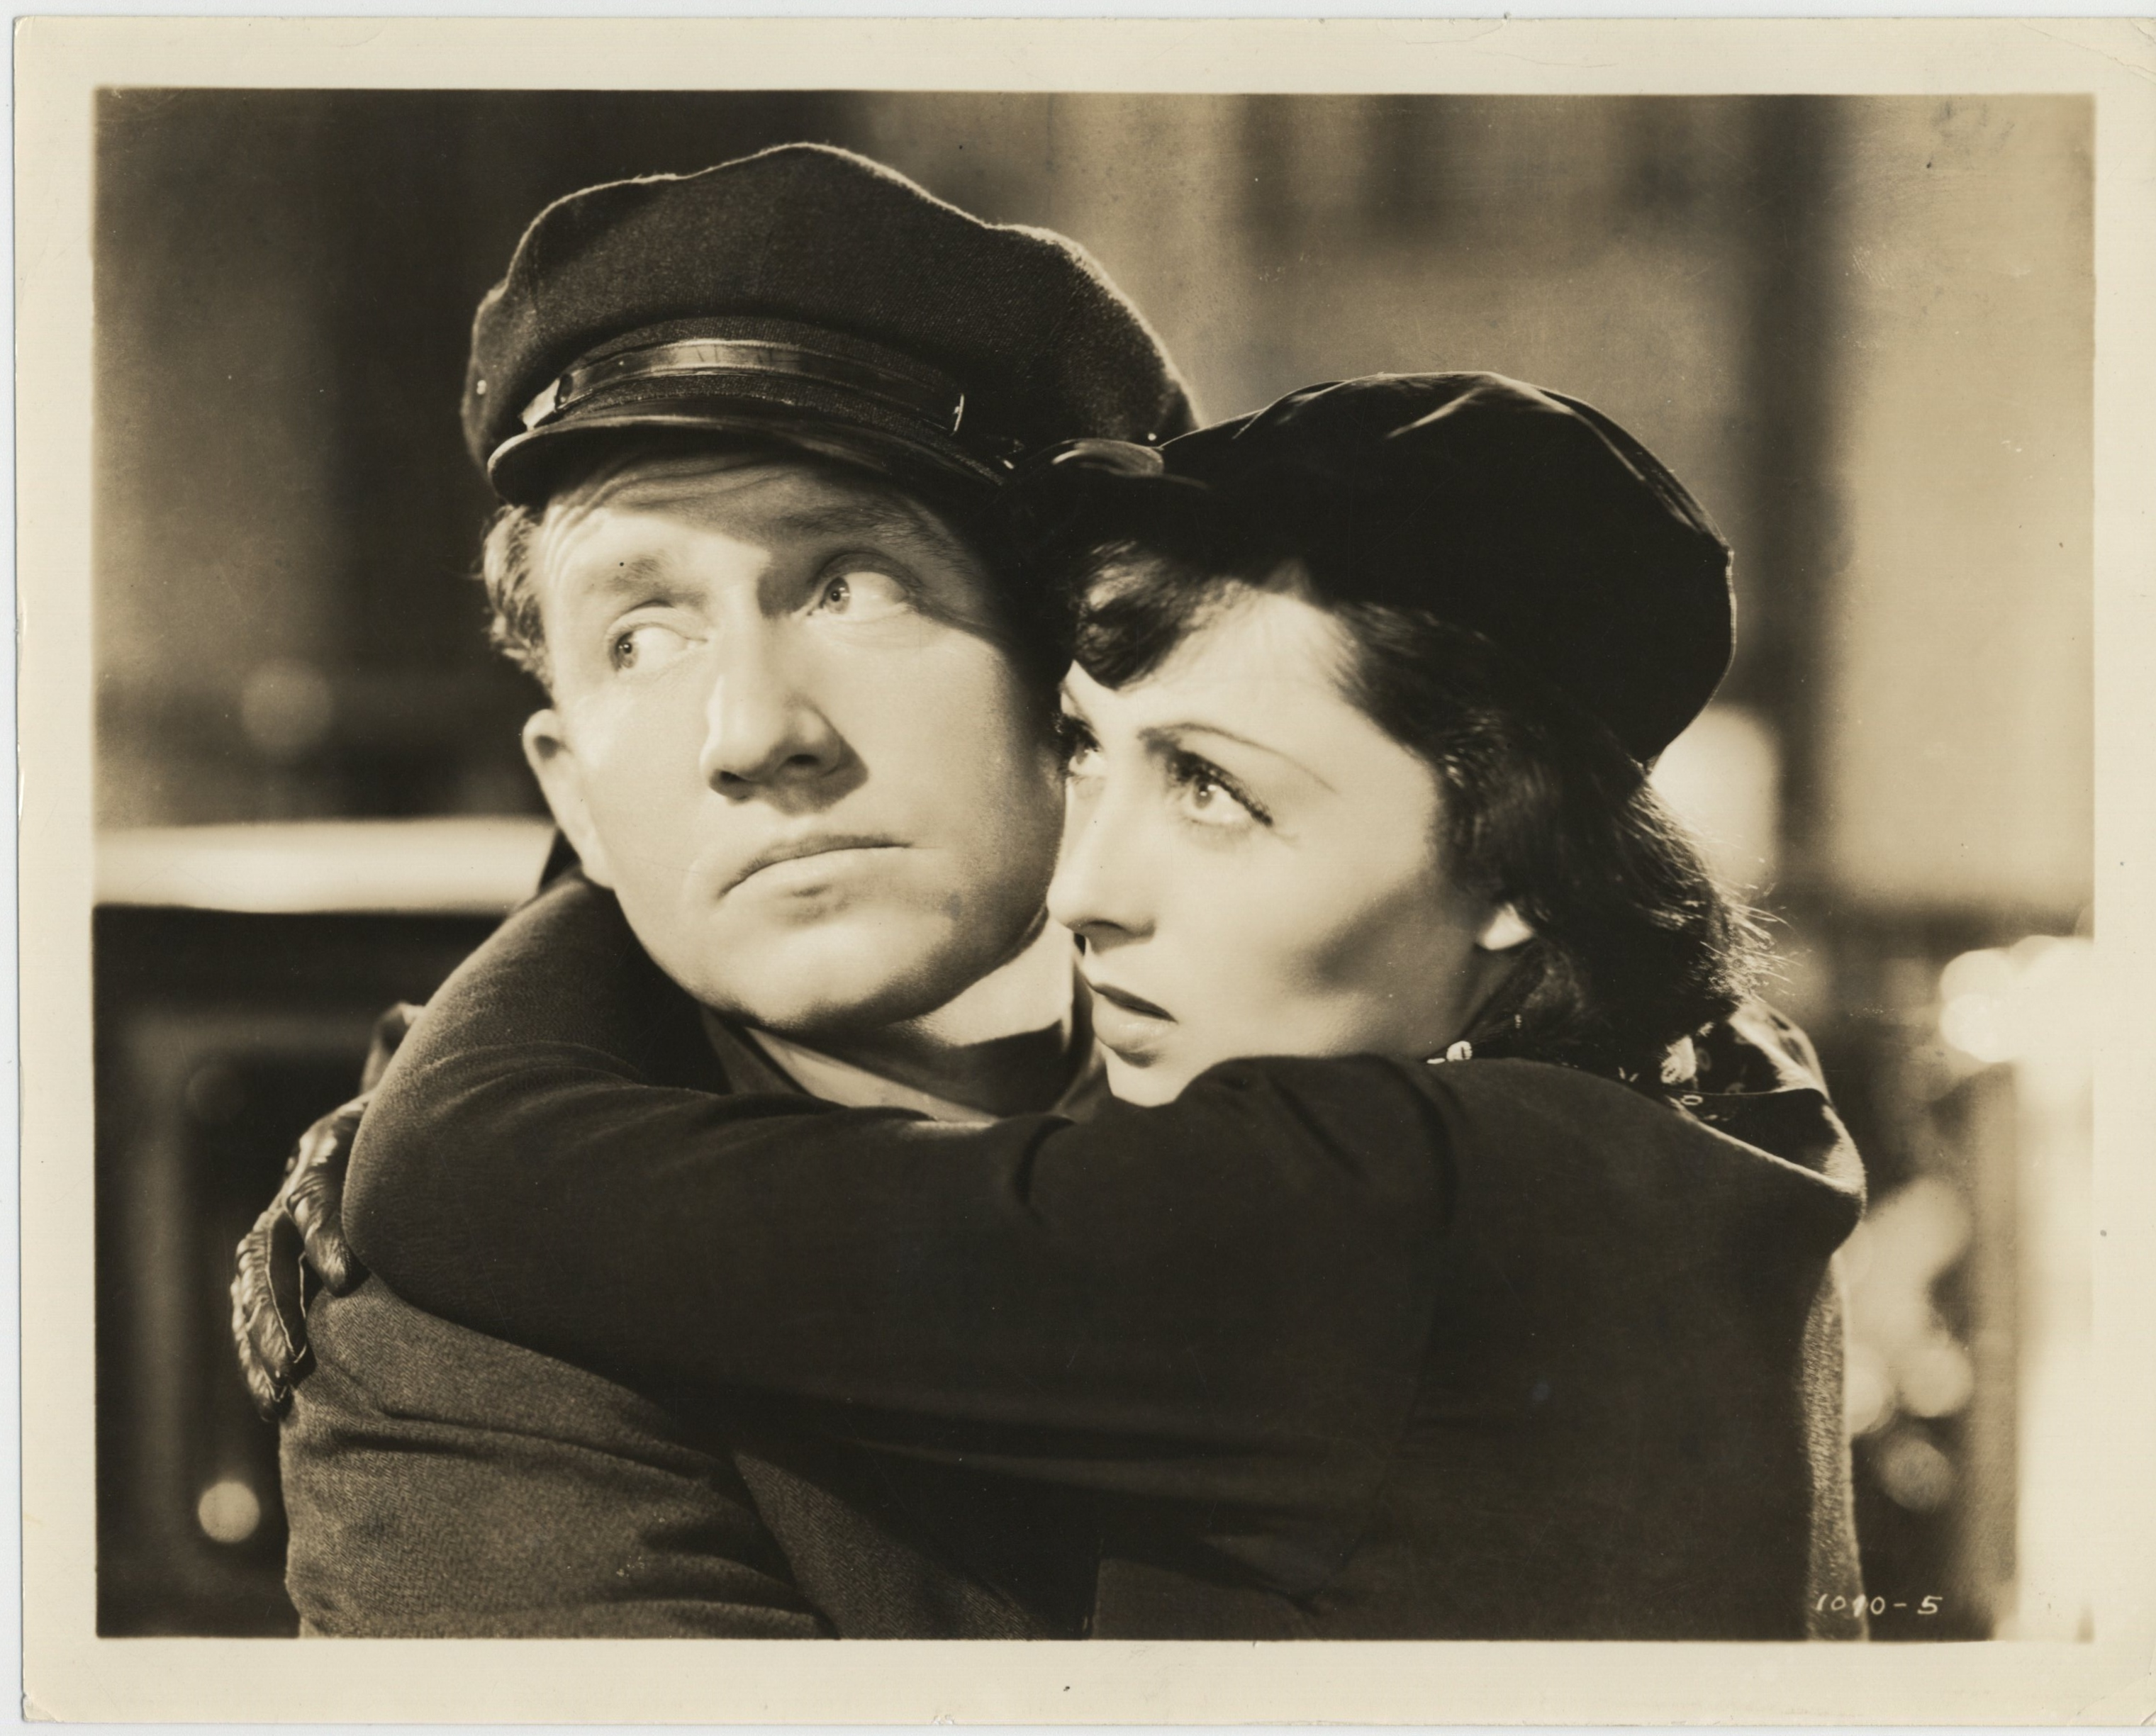 Spencer Tracy and Luise Rainer in Big City (1937)